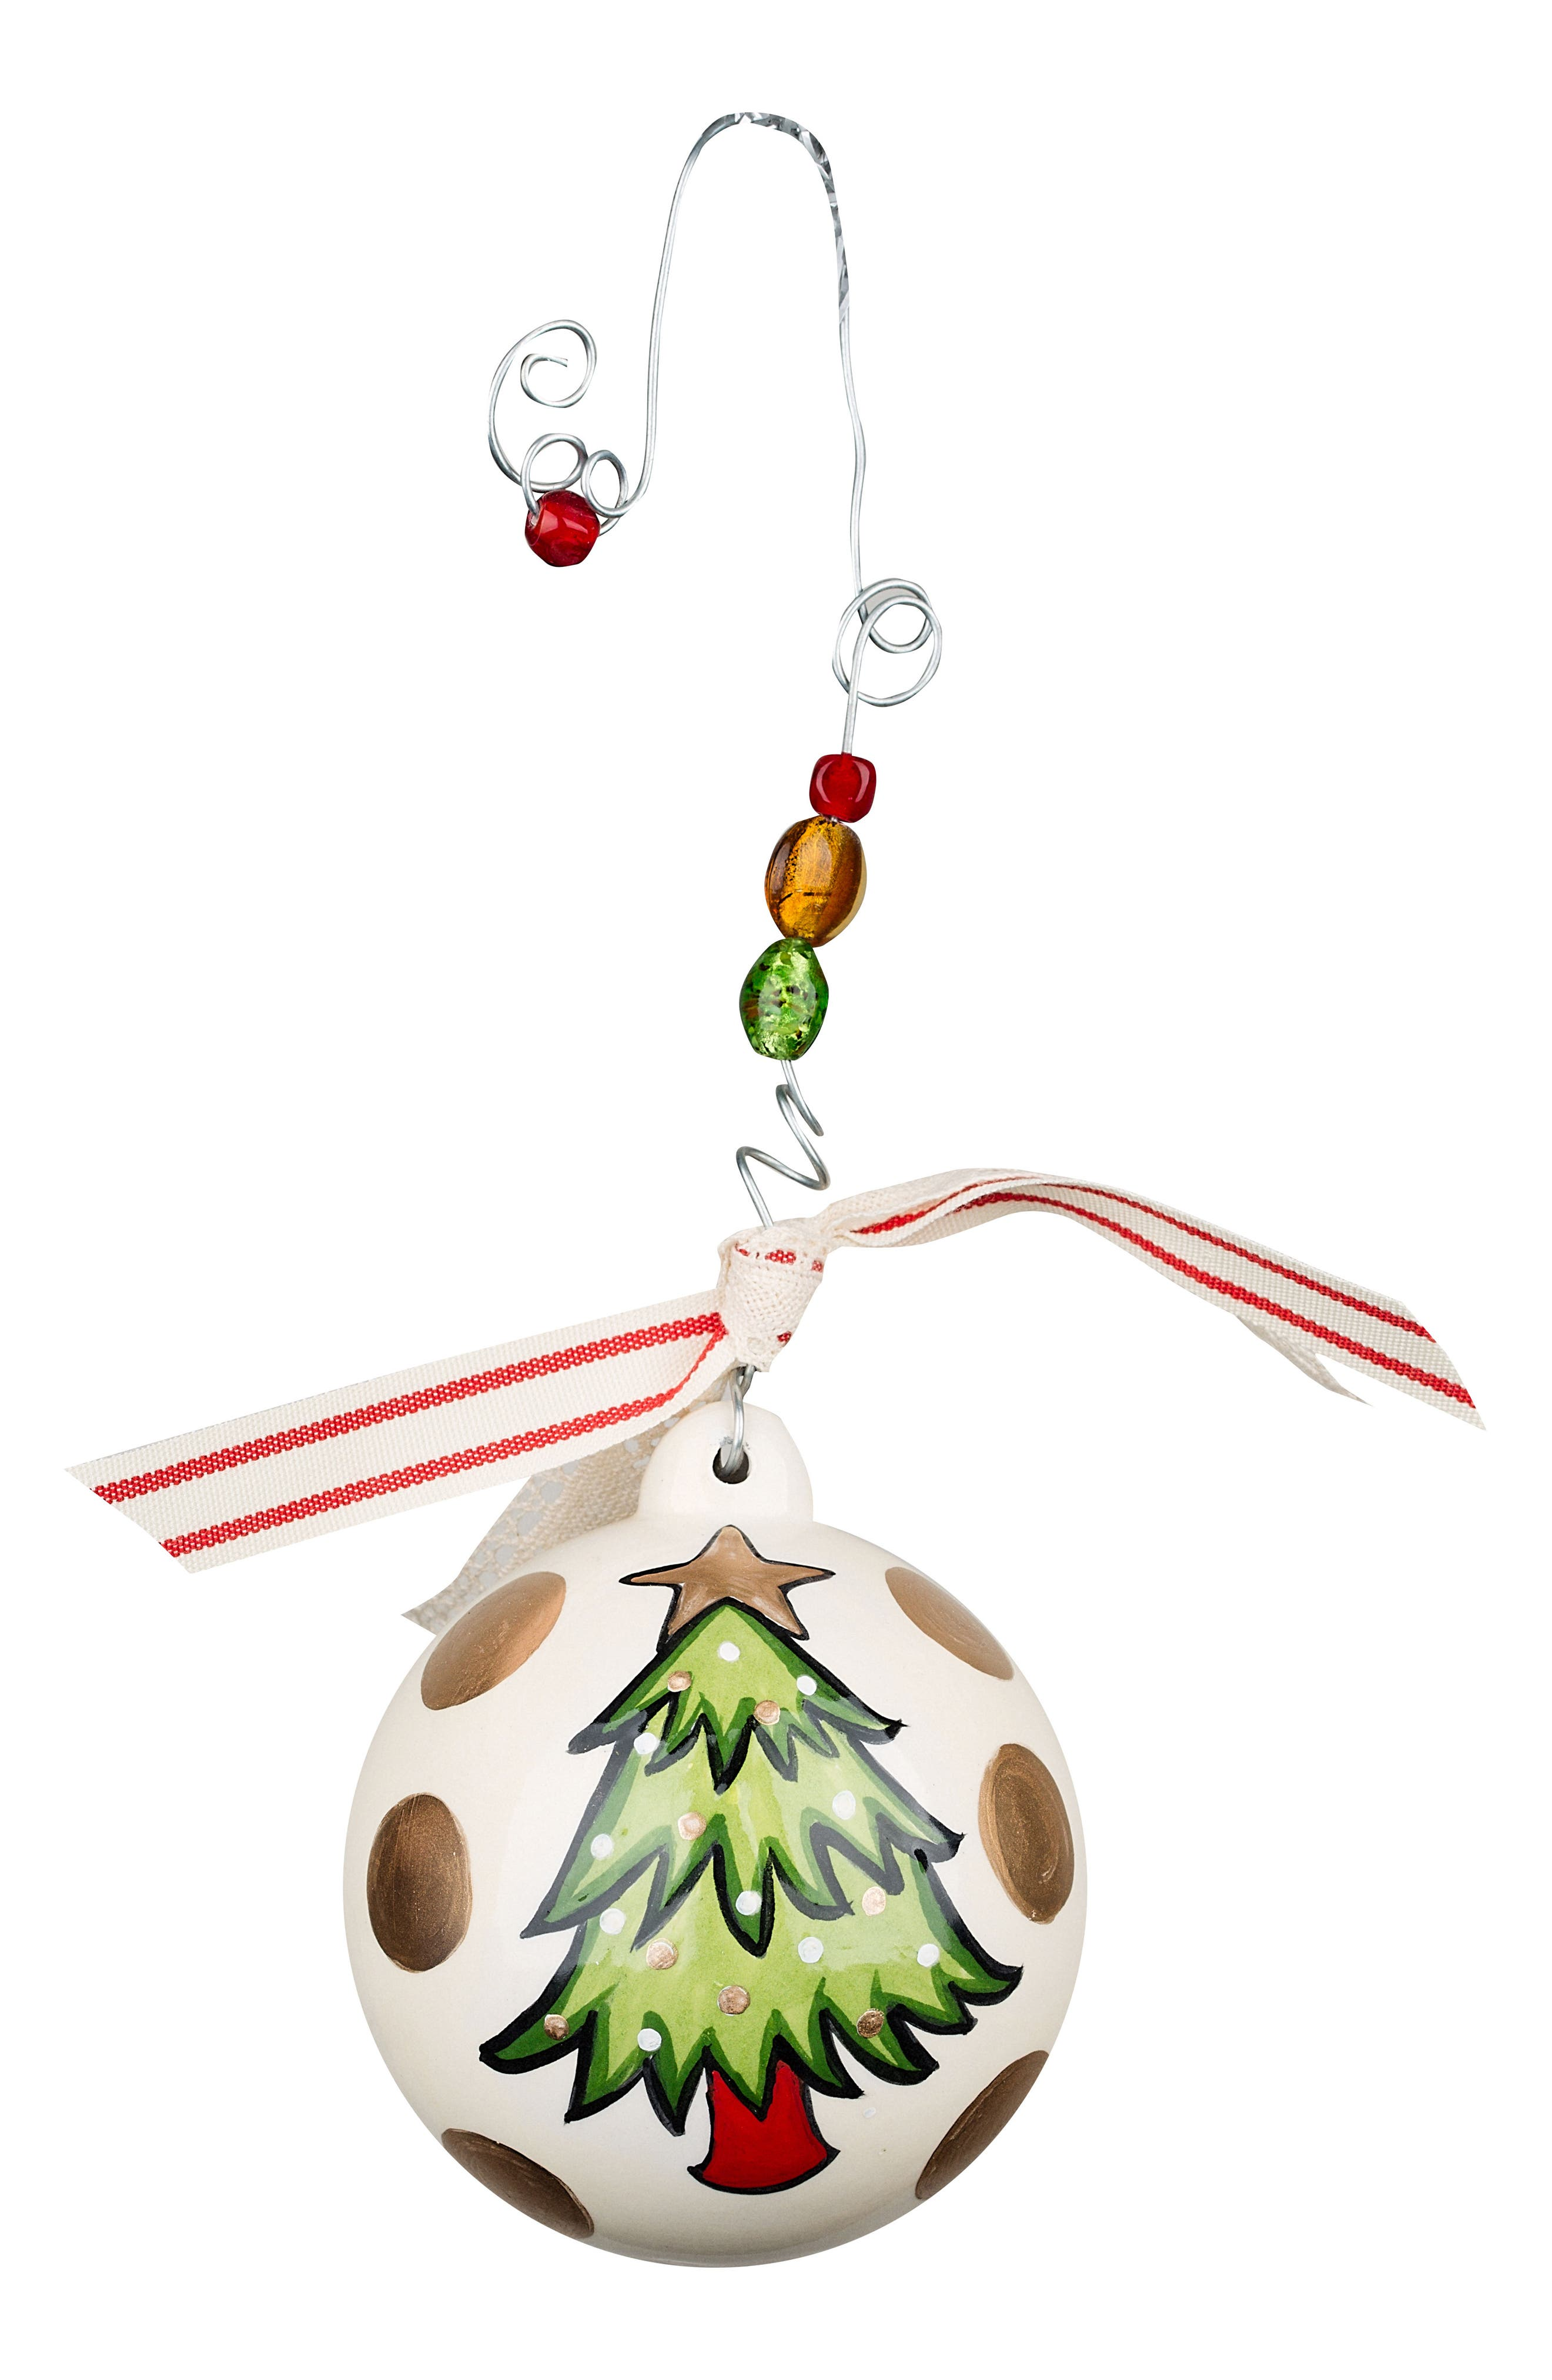 Most Wonderful Time of the Year Ball Ornament,                             Alternate thumbnail 2, color,                             Green/ Multi